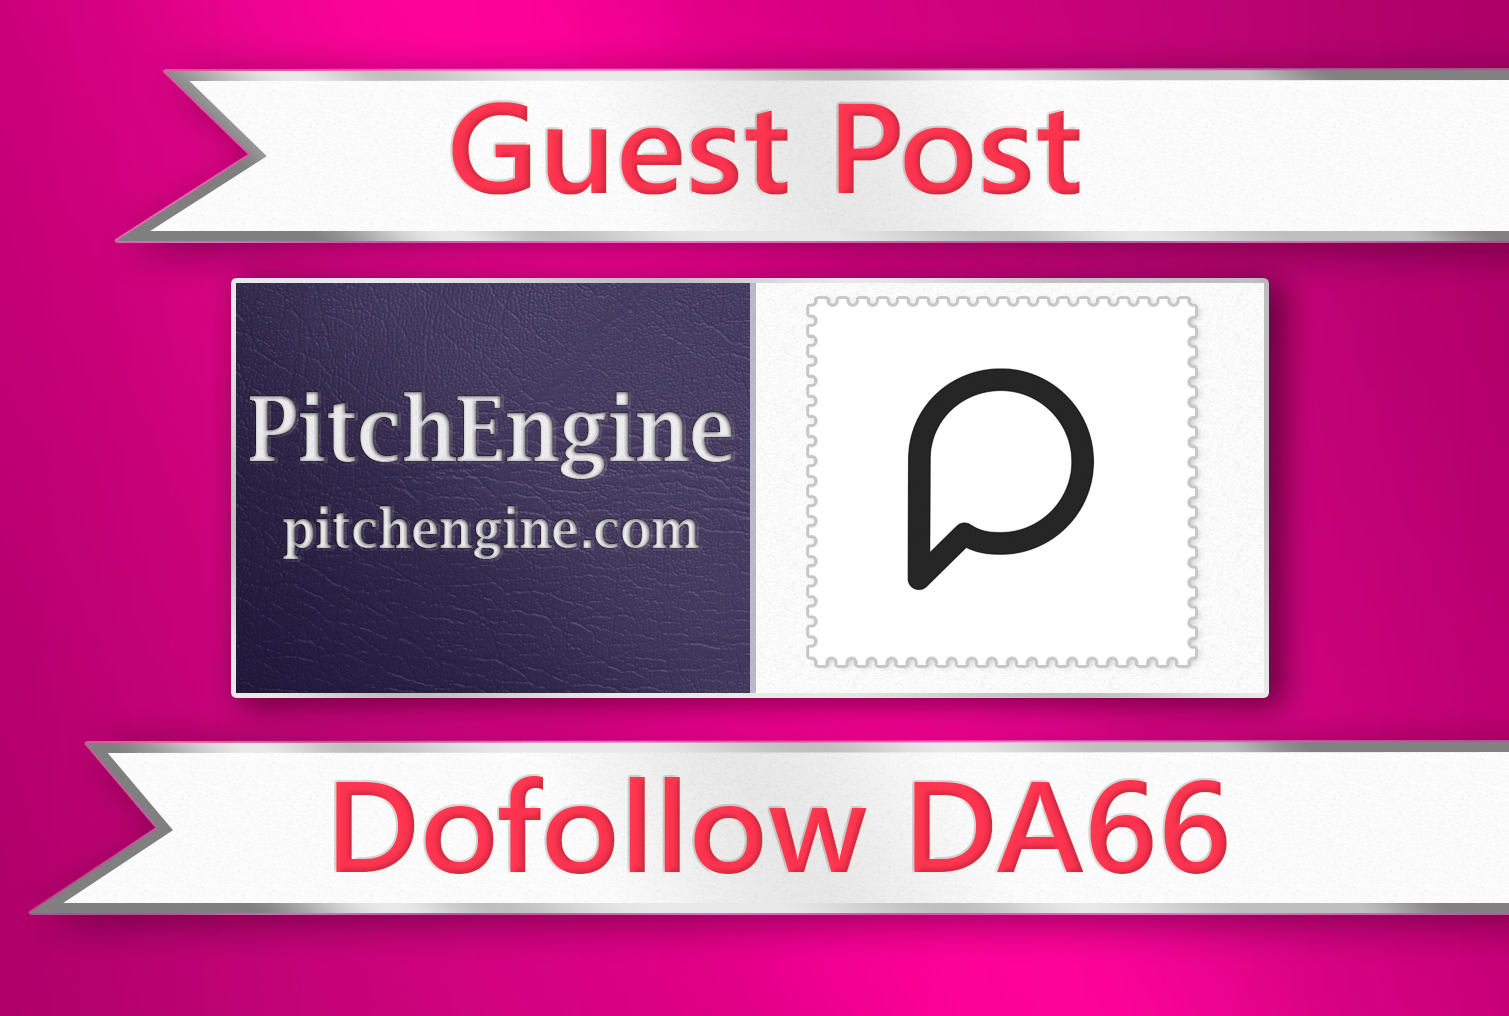 I will do guest post on pitchengine